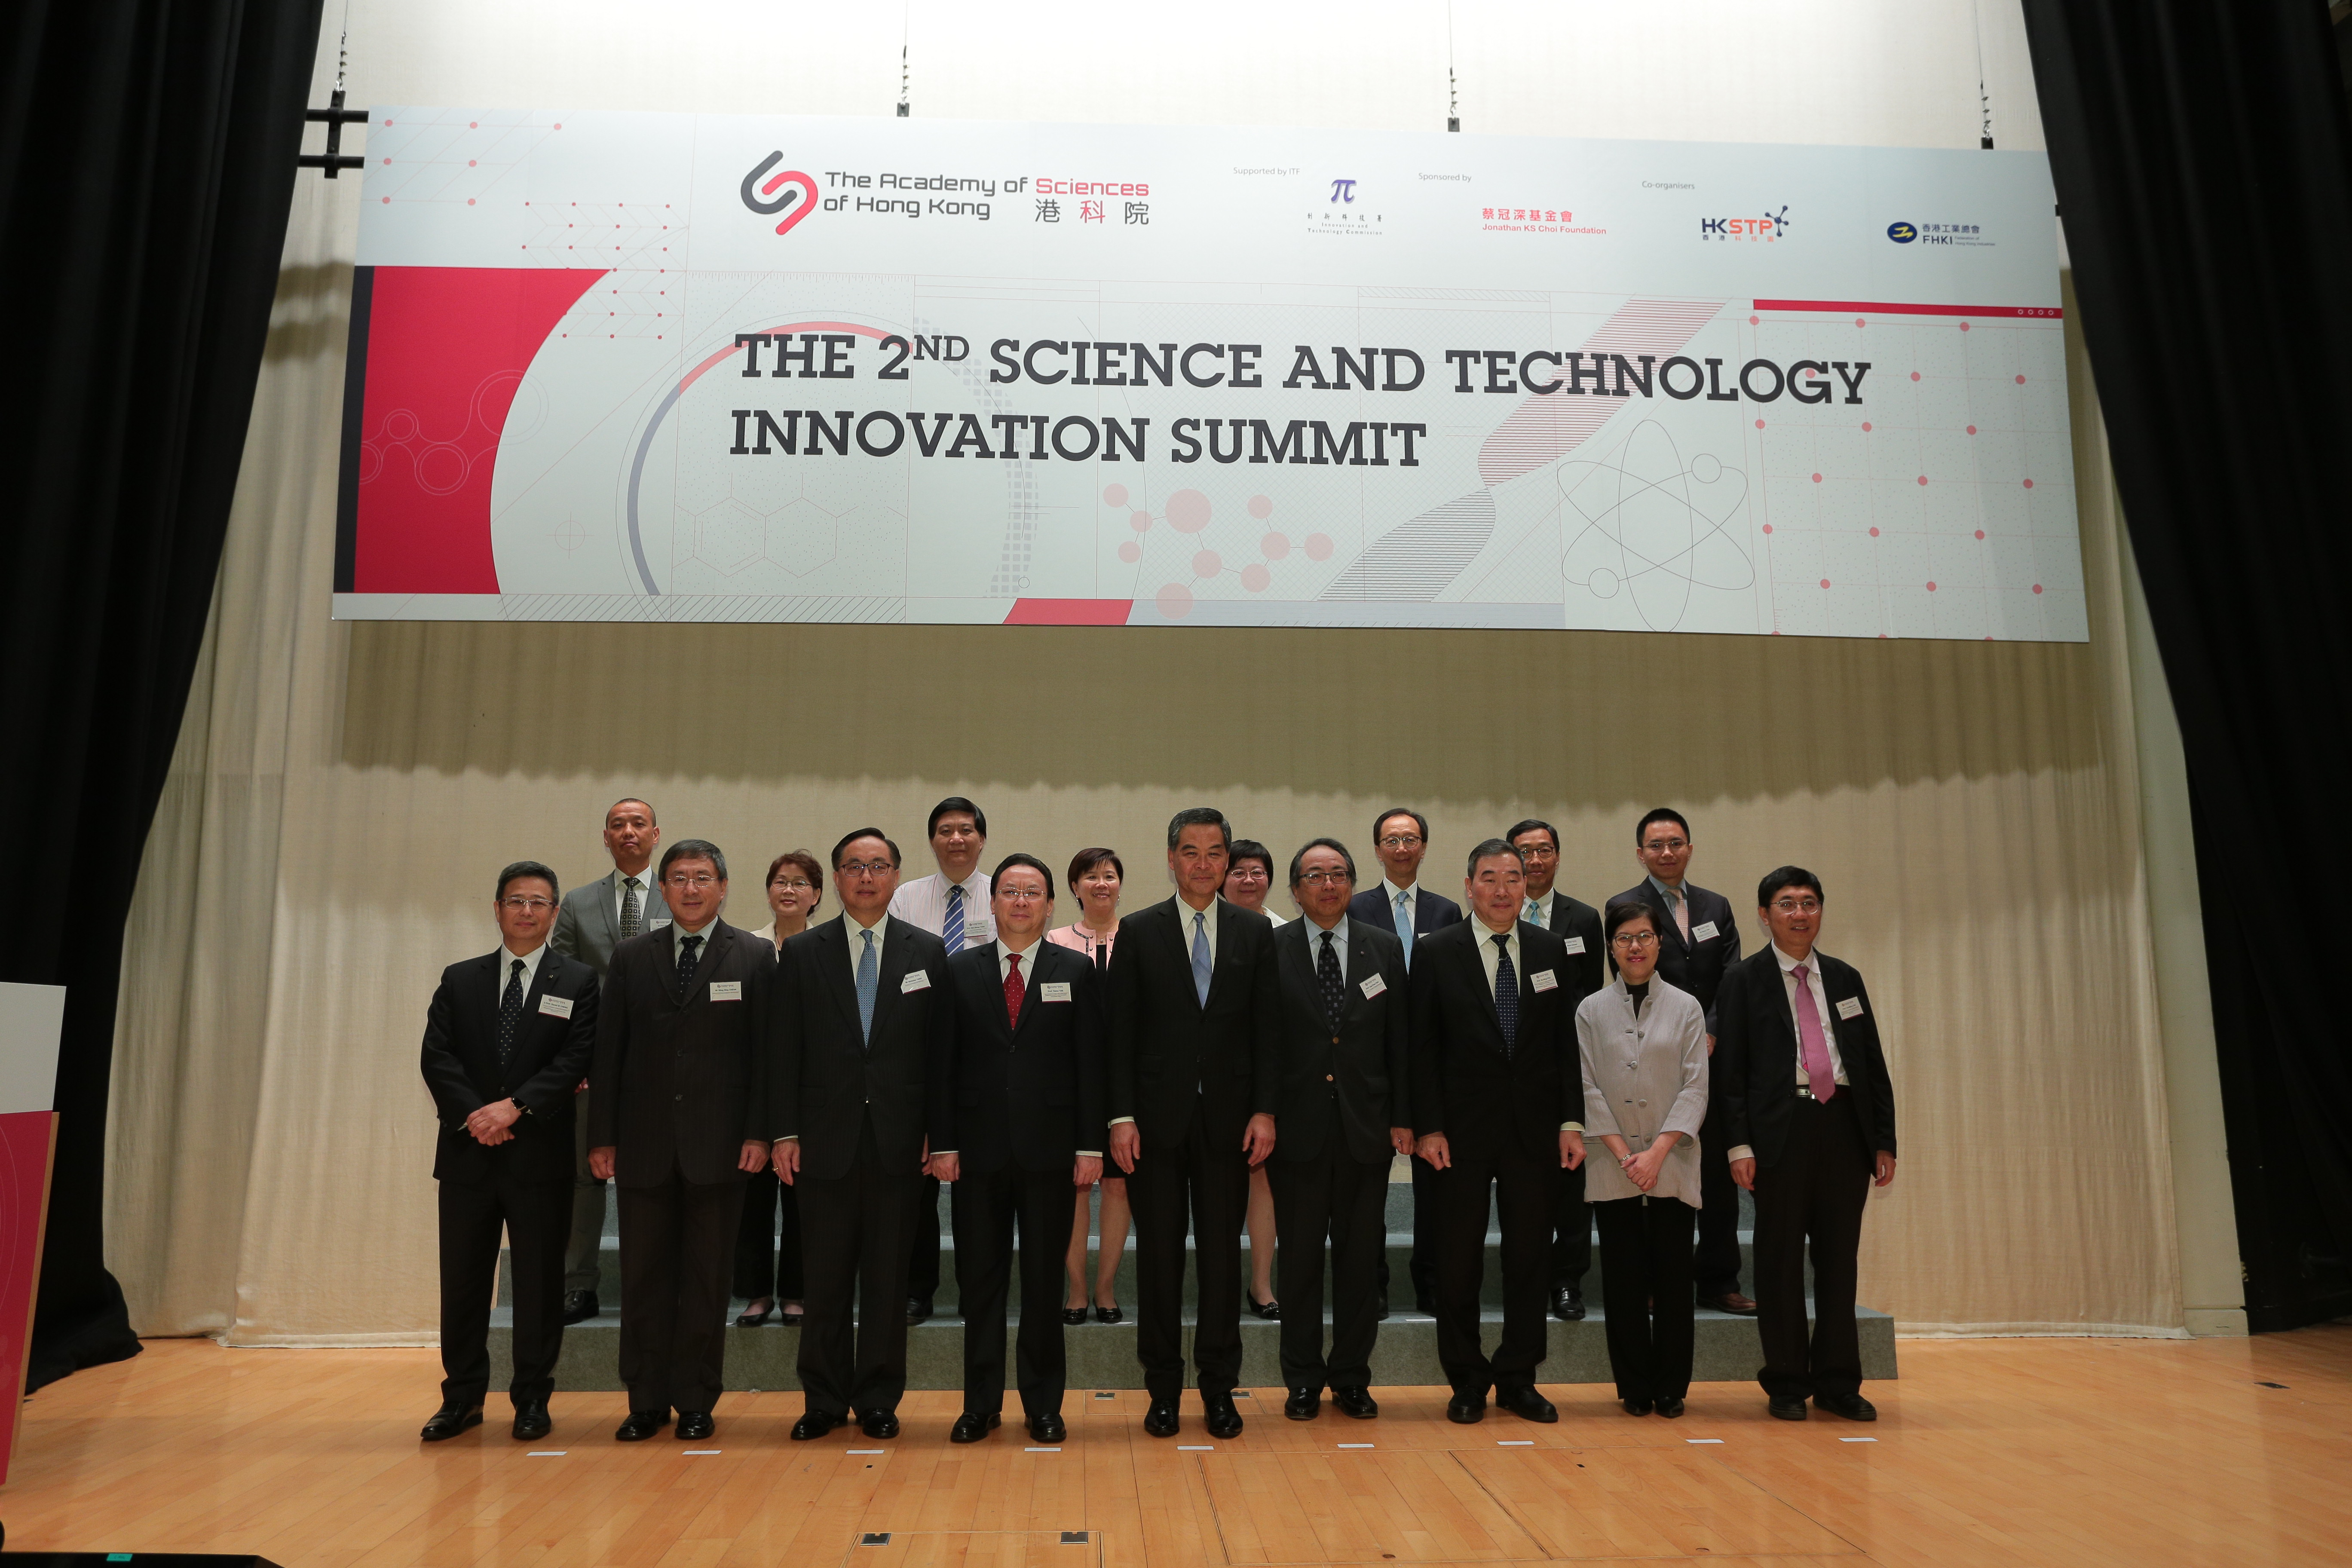 The 2nd Science and Technology Innovation Summit